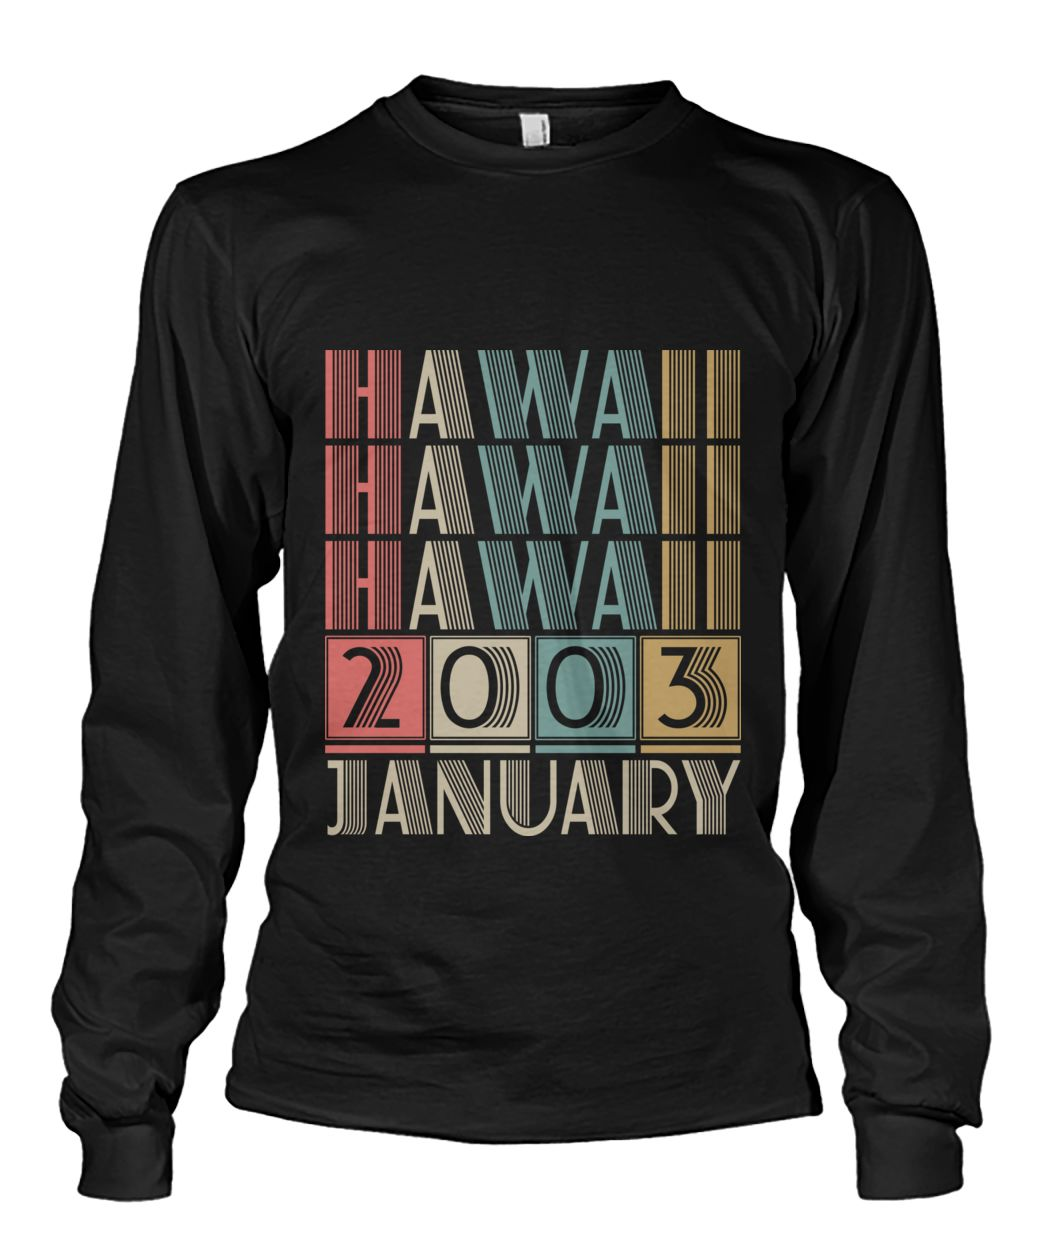 Born in Hawaii in January 2003 t shirt-Short Sleeves - TEEHOT.COM